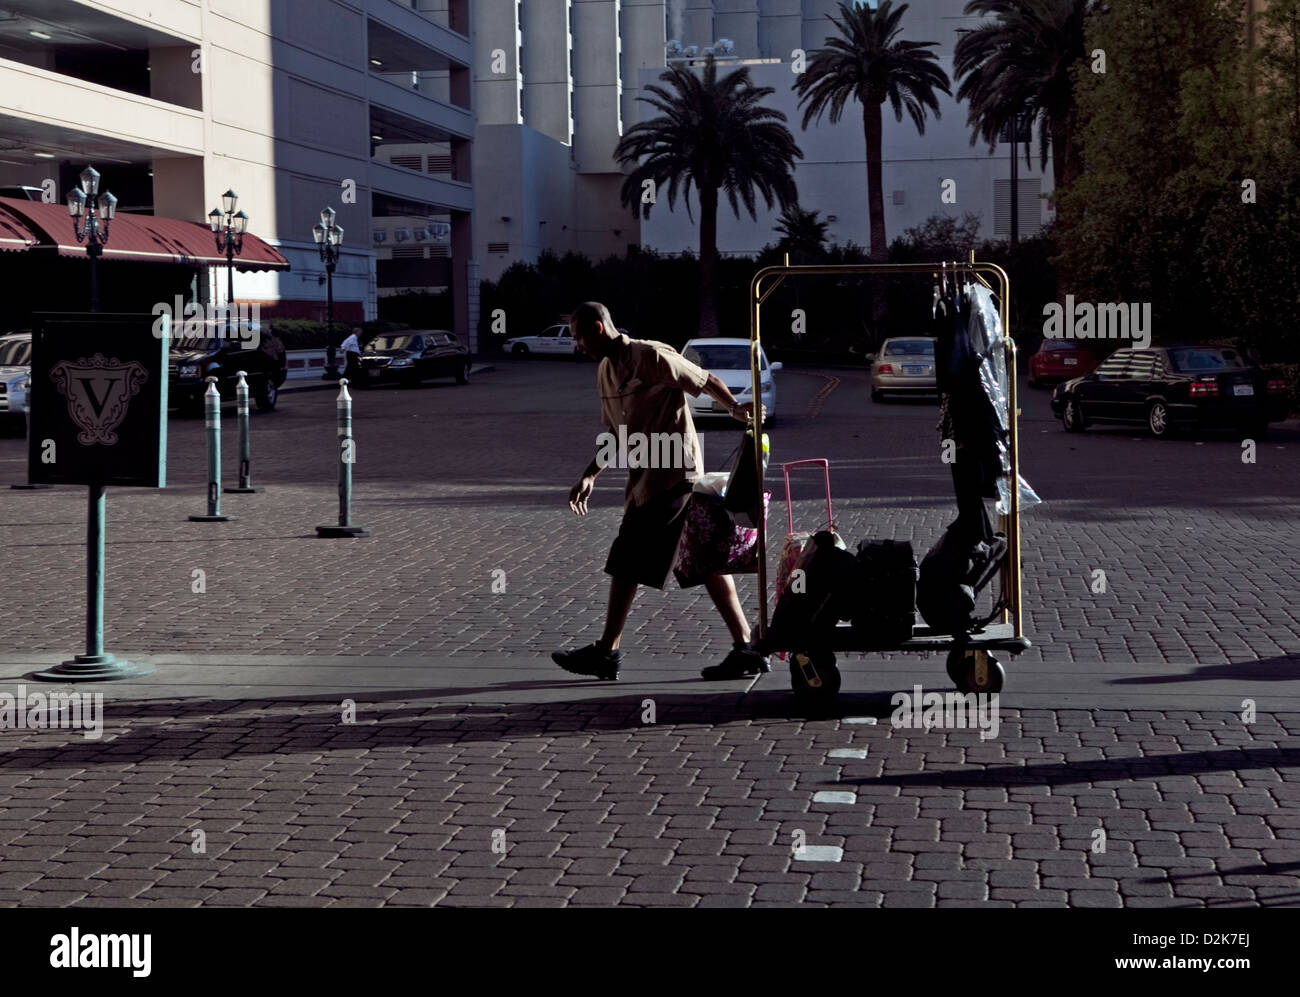 A BELLHOP PULLS  A LUGGAGE TROLLEY INTO HOTEL IN LAS VEGAS, OCT 2010 - Stock Image